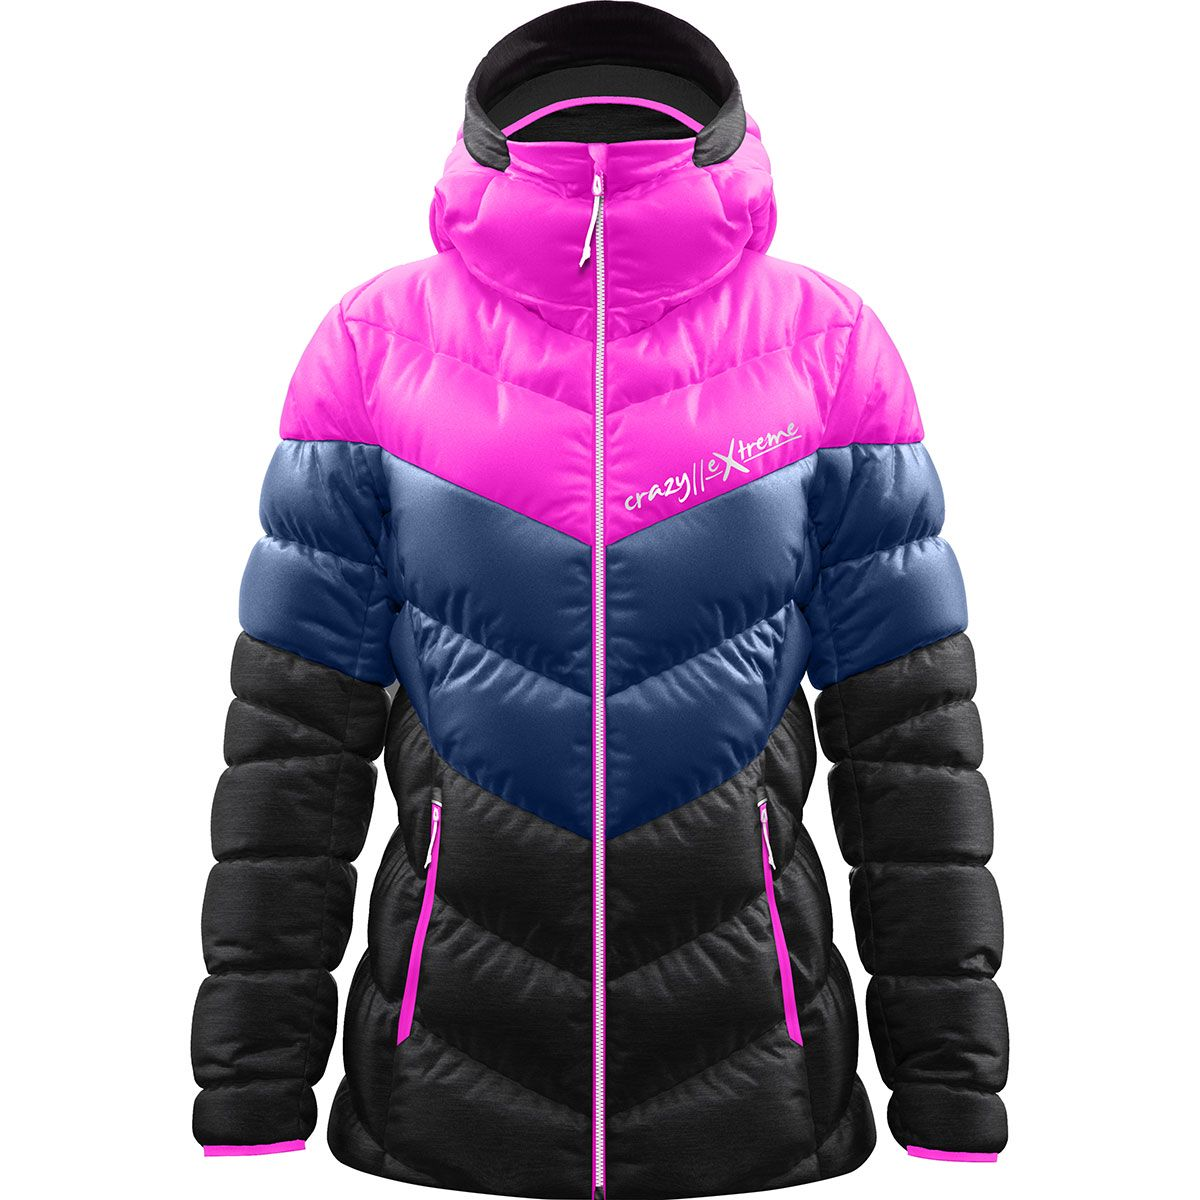 Crazy Idea Damen Everest Jacke (Größe S, Pink) | Isolationsjacken > Damen